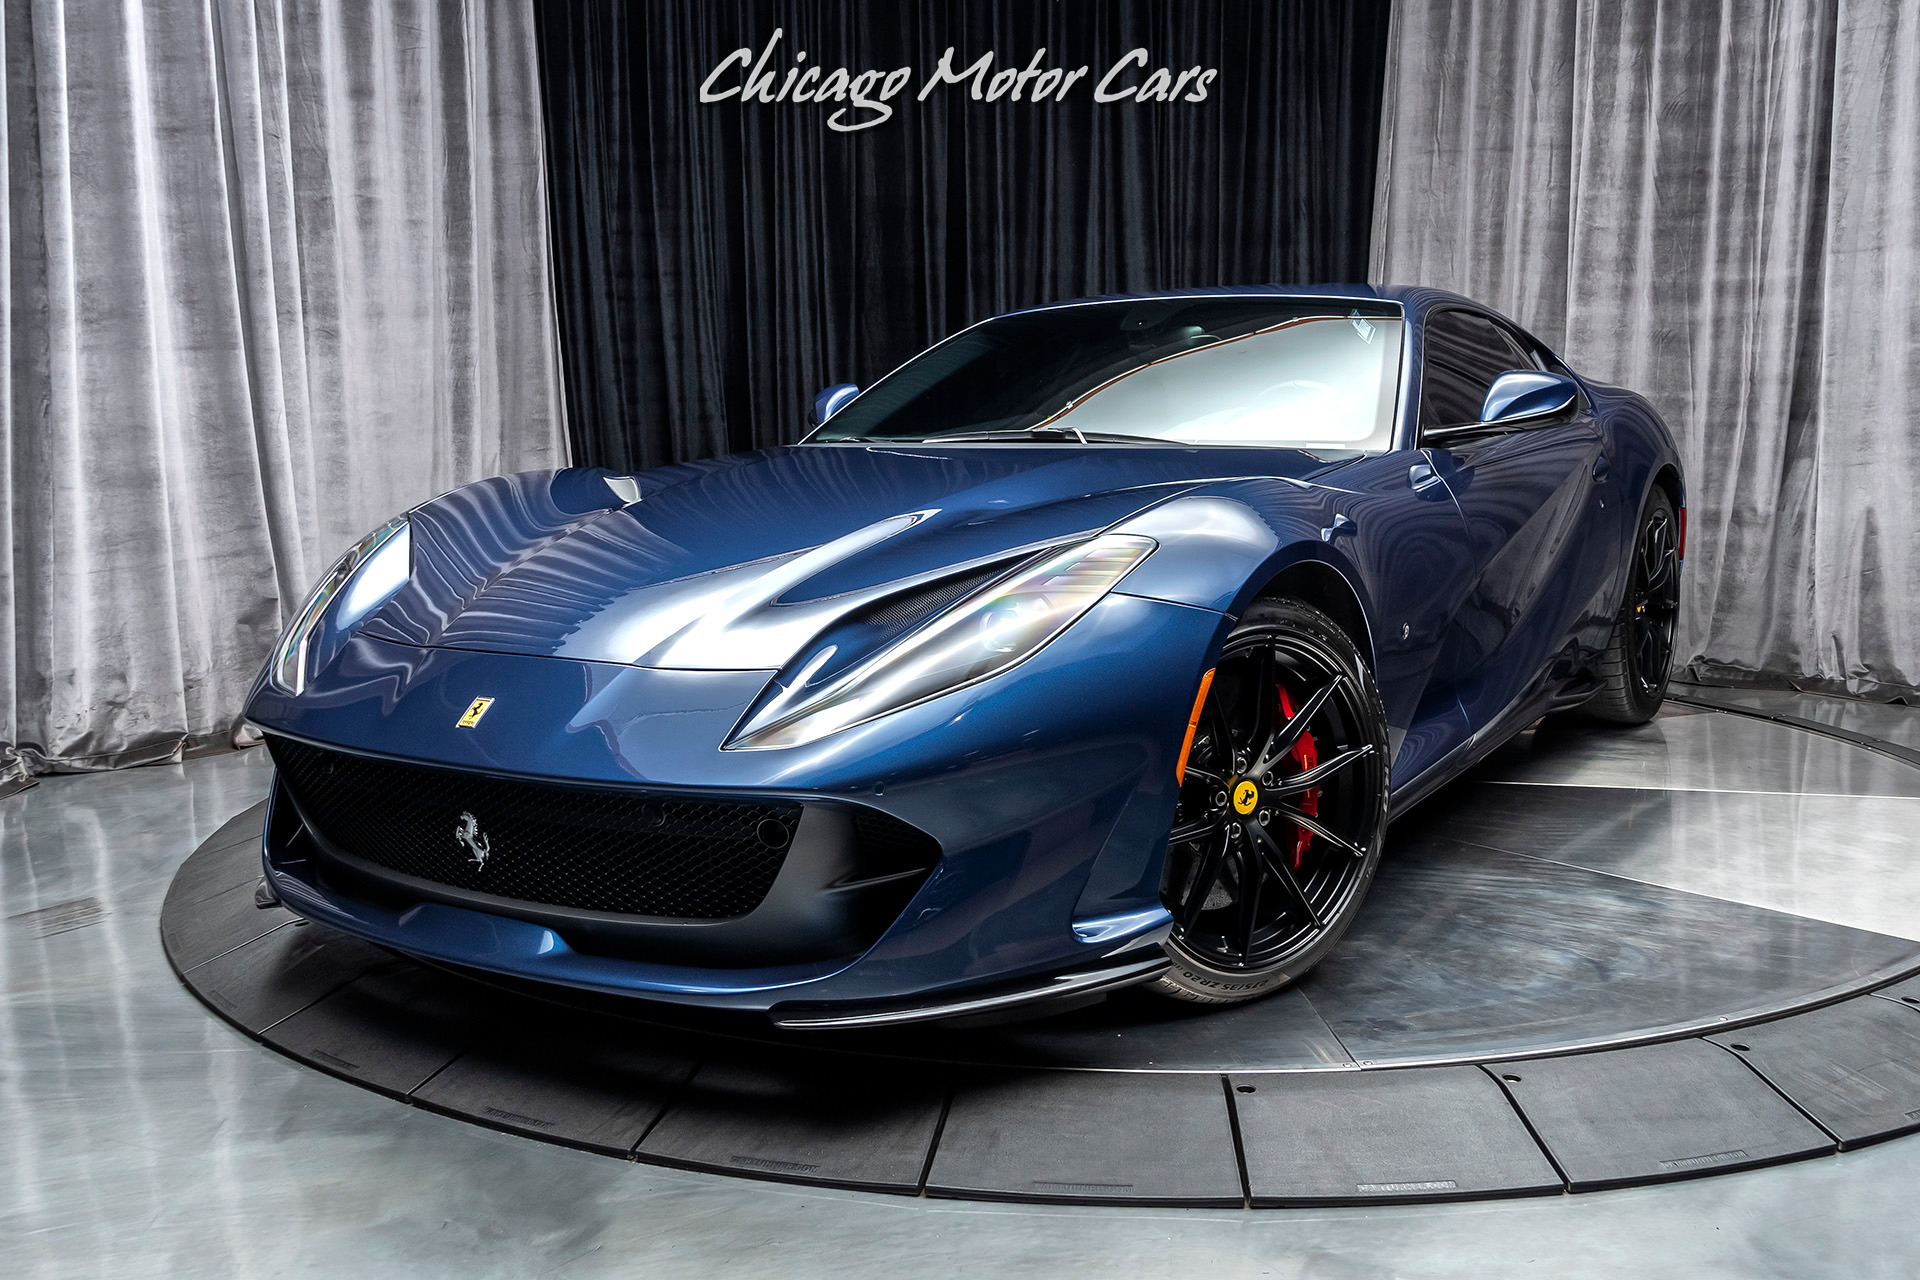 Used 2018 Ferrari 812 Superfast Coupe Original Msrp 403k Stunning Combination Loaded Ppf For Sale Special Pricing Chicago Motor Cars Stock 17118